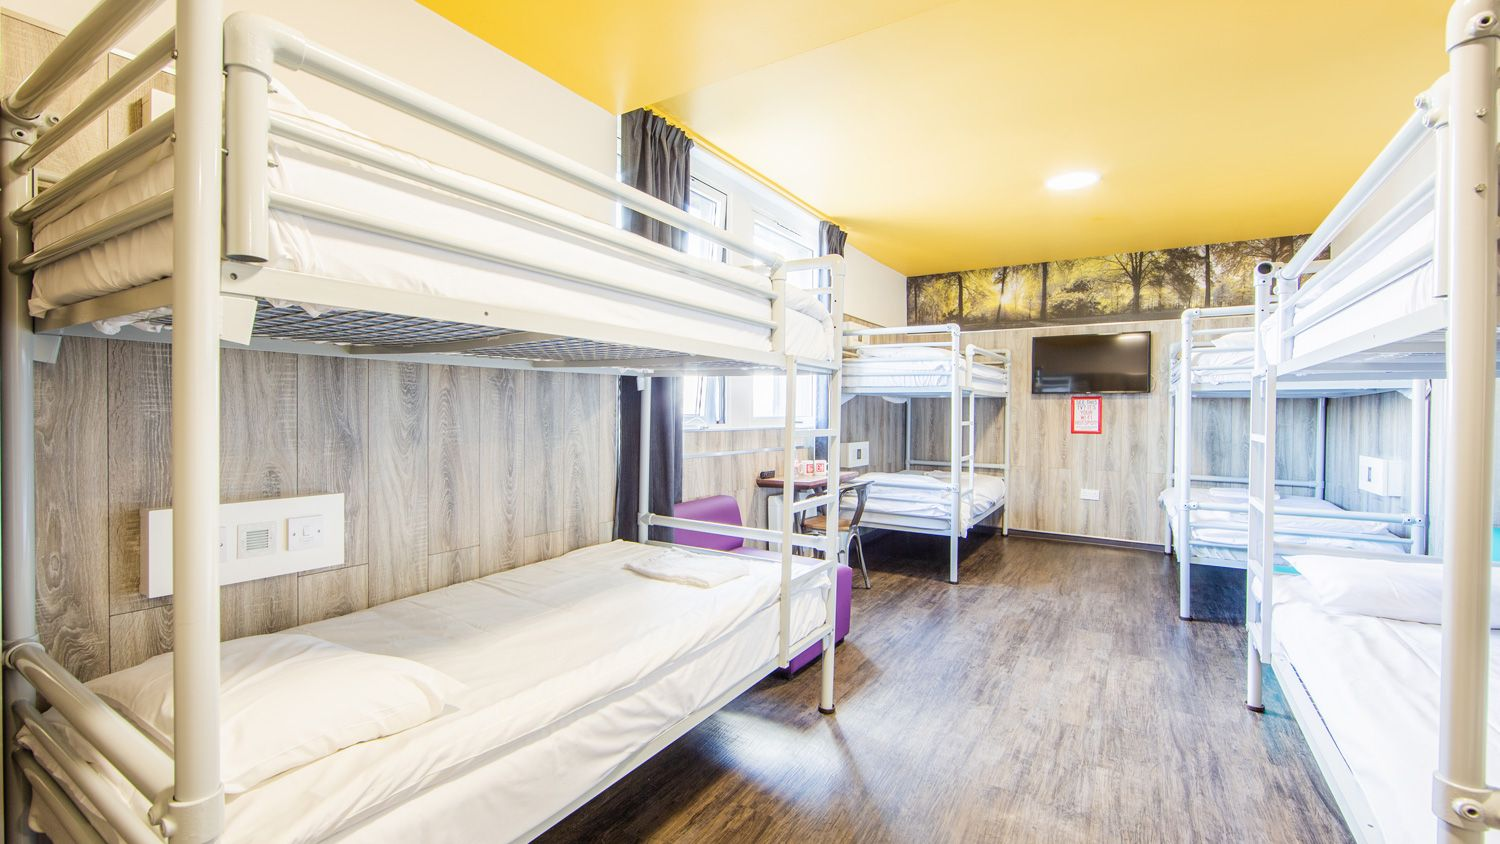 8 Person Private Room at Euro Hostel Glasgow